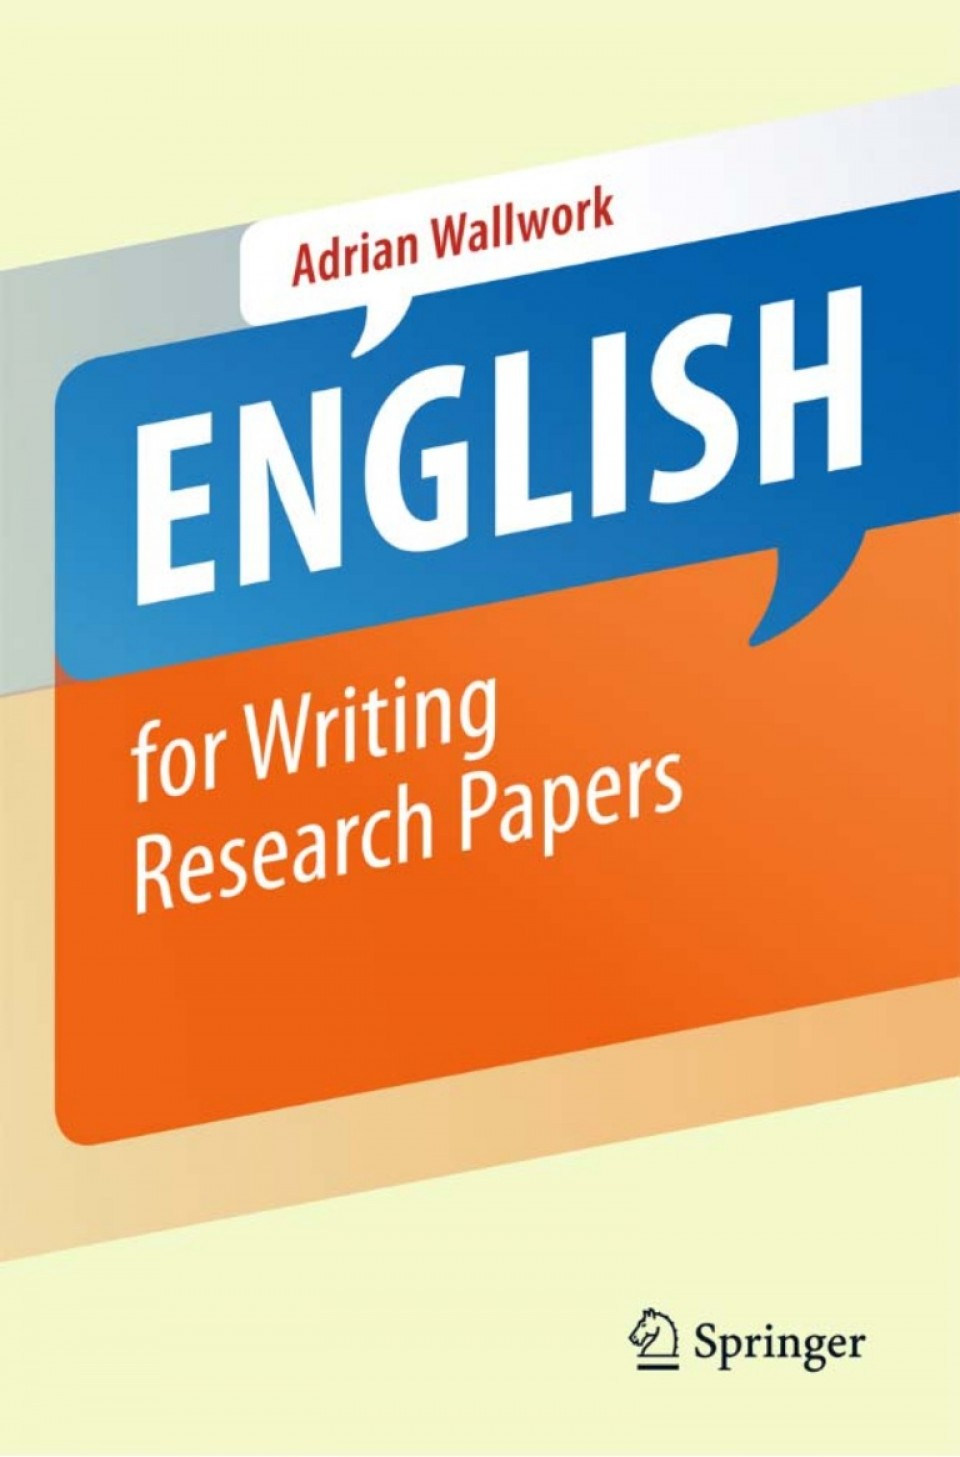 019 Englishforwritingresearchpapers Conversion Gate01 Thumbnail Writing Research Striking Paper Papers A Complete Guide Global Edition Pdf Lester 16th Free 960